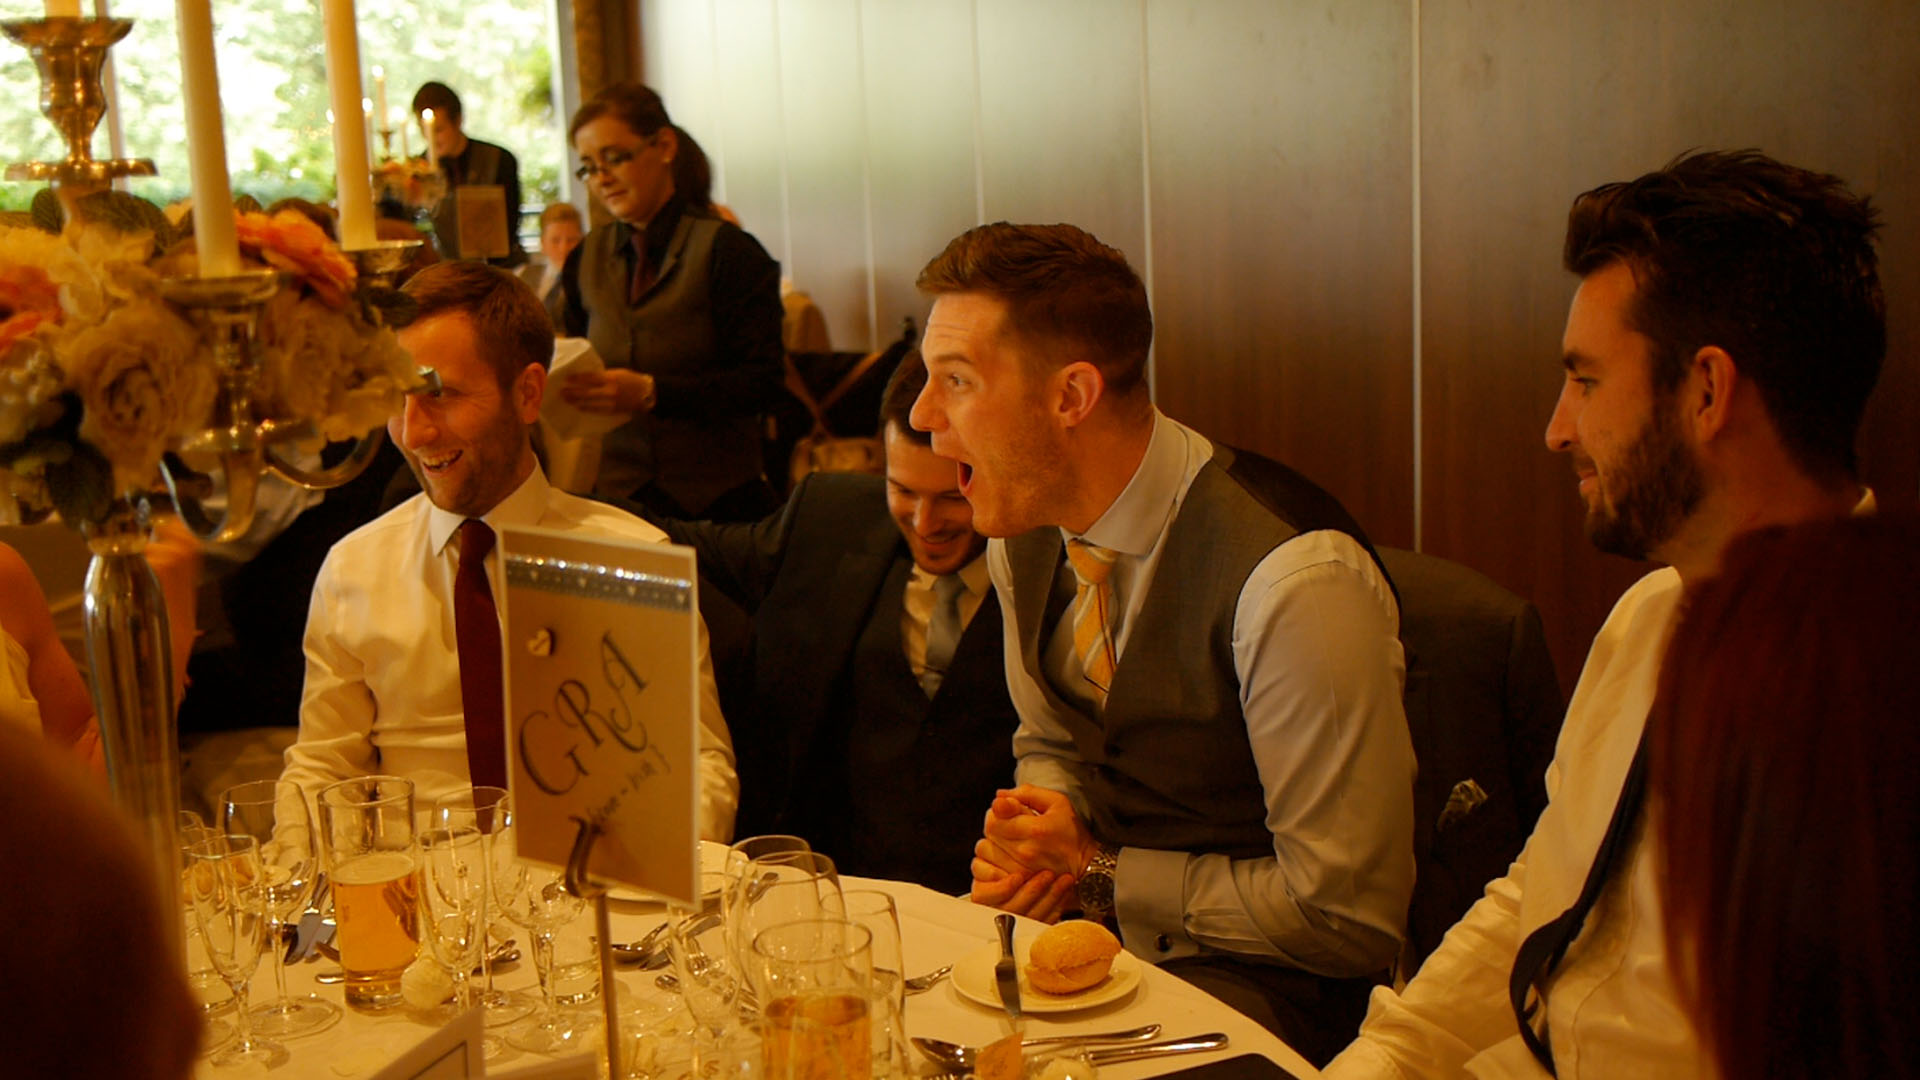 Manchester corporate close up magician wows table audience